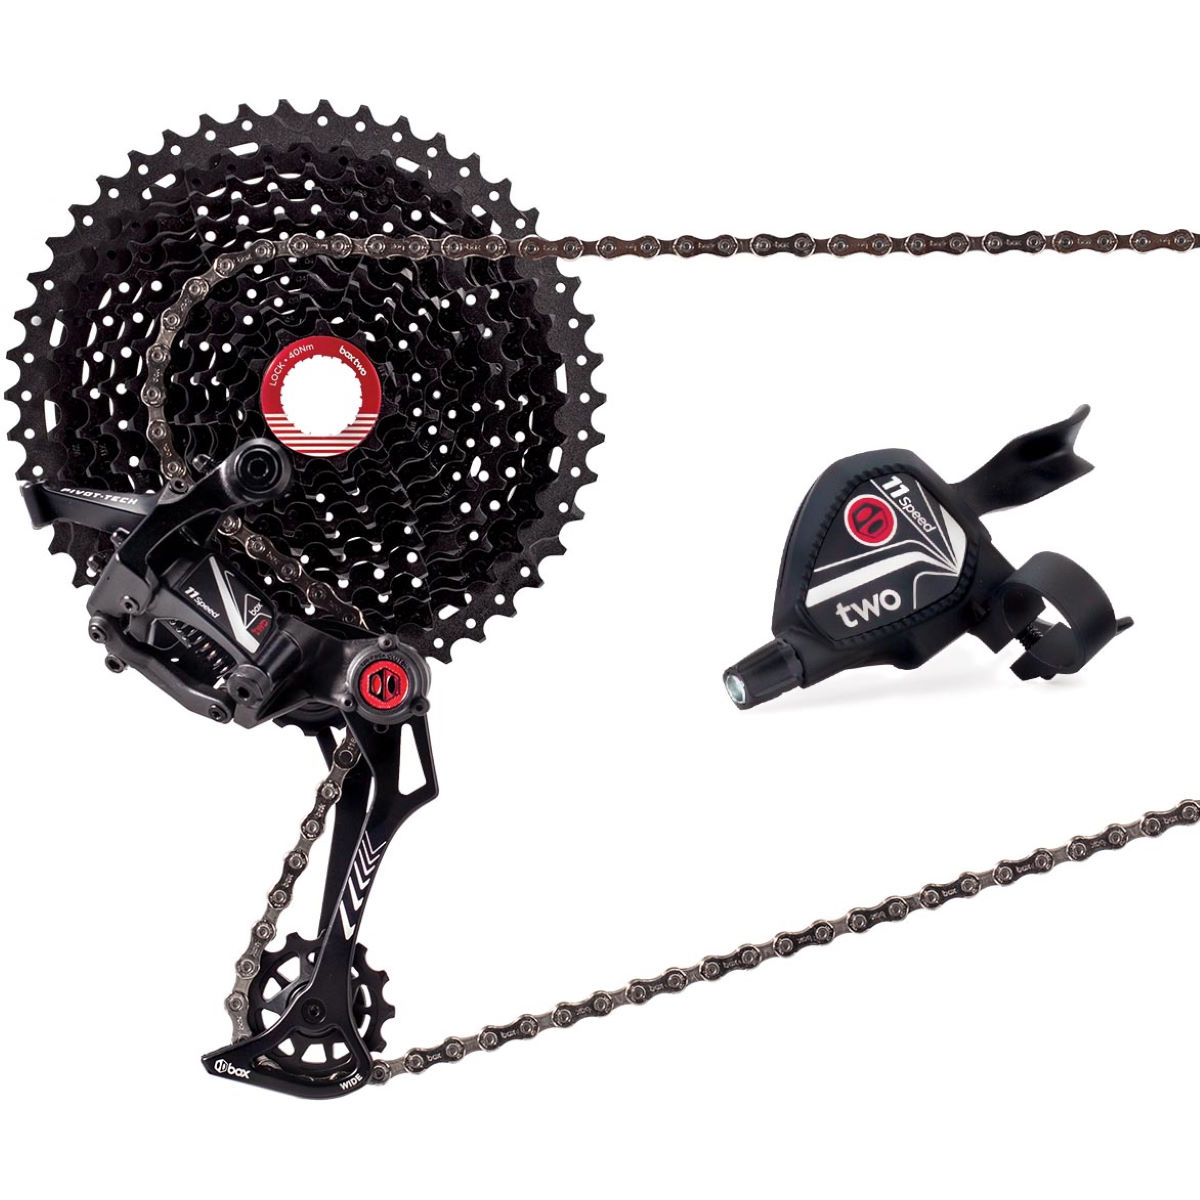 Box Two 11 Speed Wide Drivetrain Groupset – 11-46t Black | Groupsets